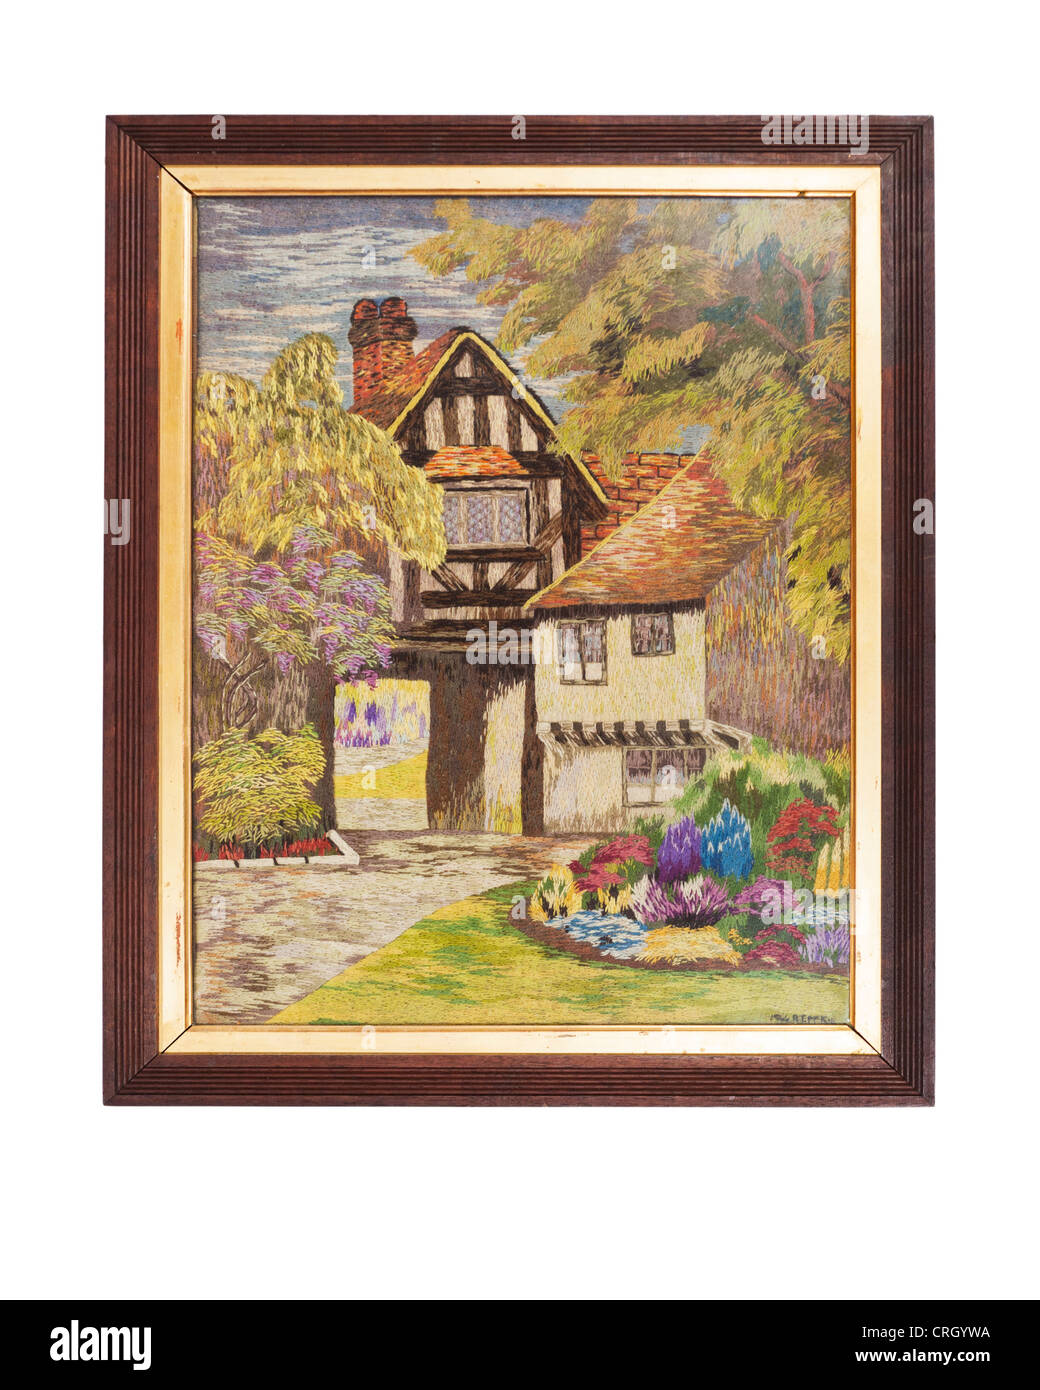 Framed hand embroidered picture of tudor cittage and country garden, done during the years of WW2. - Stock Image